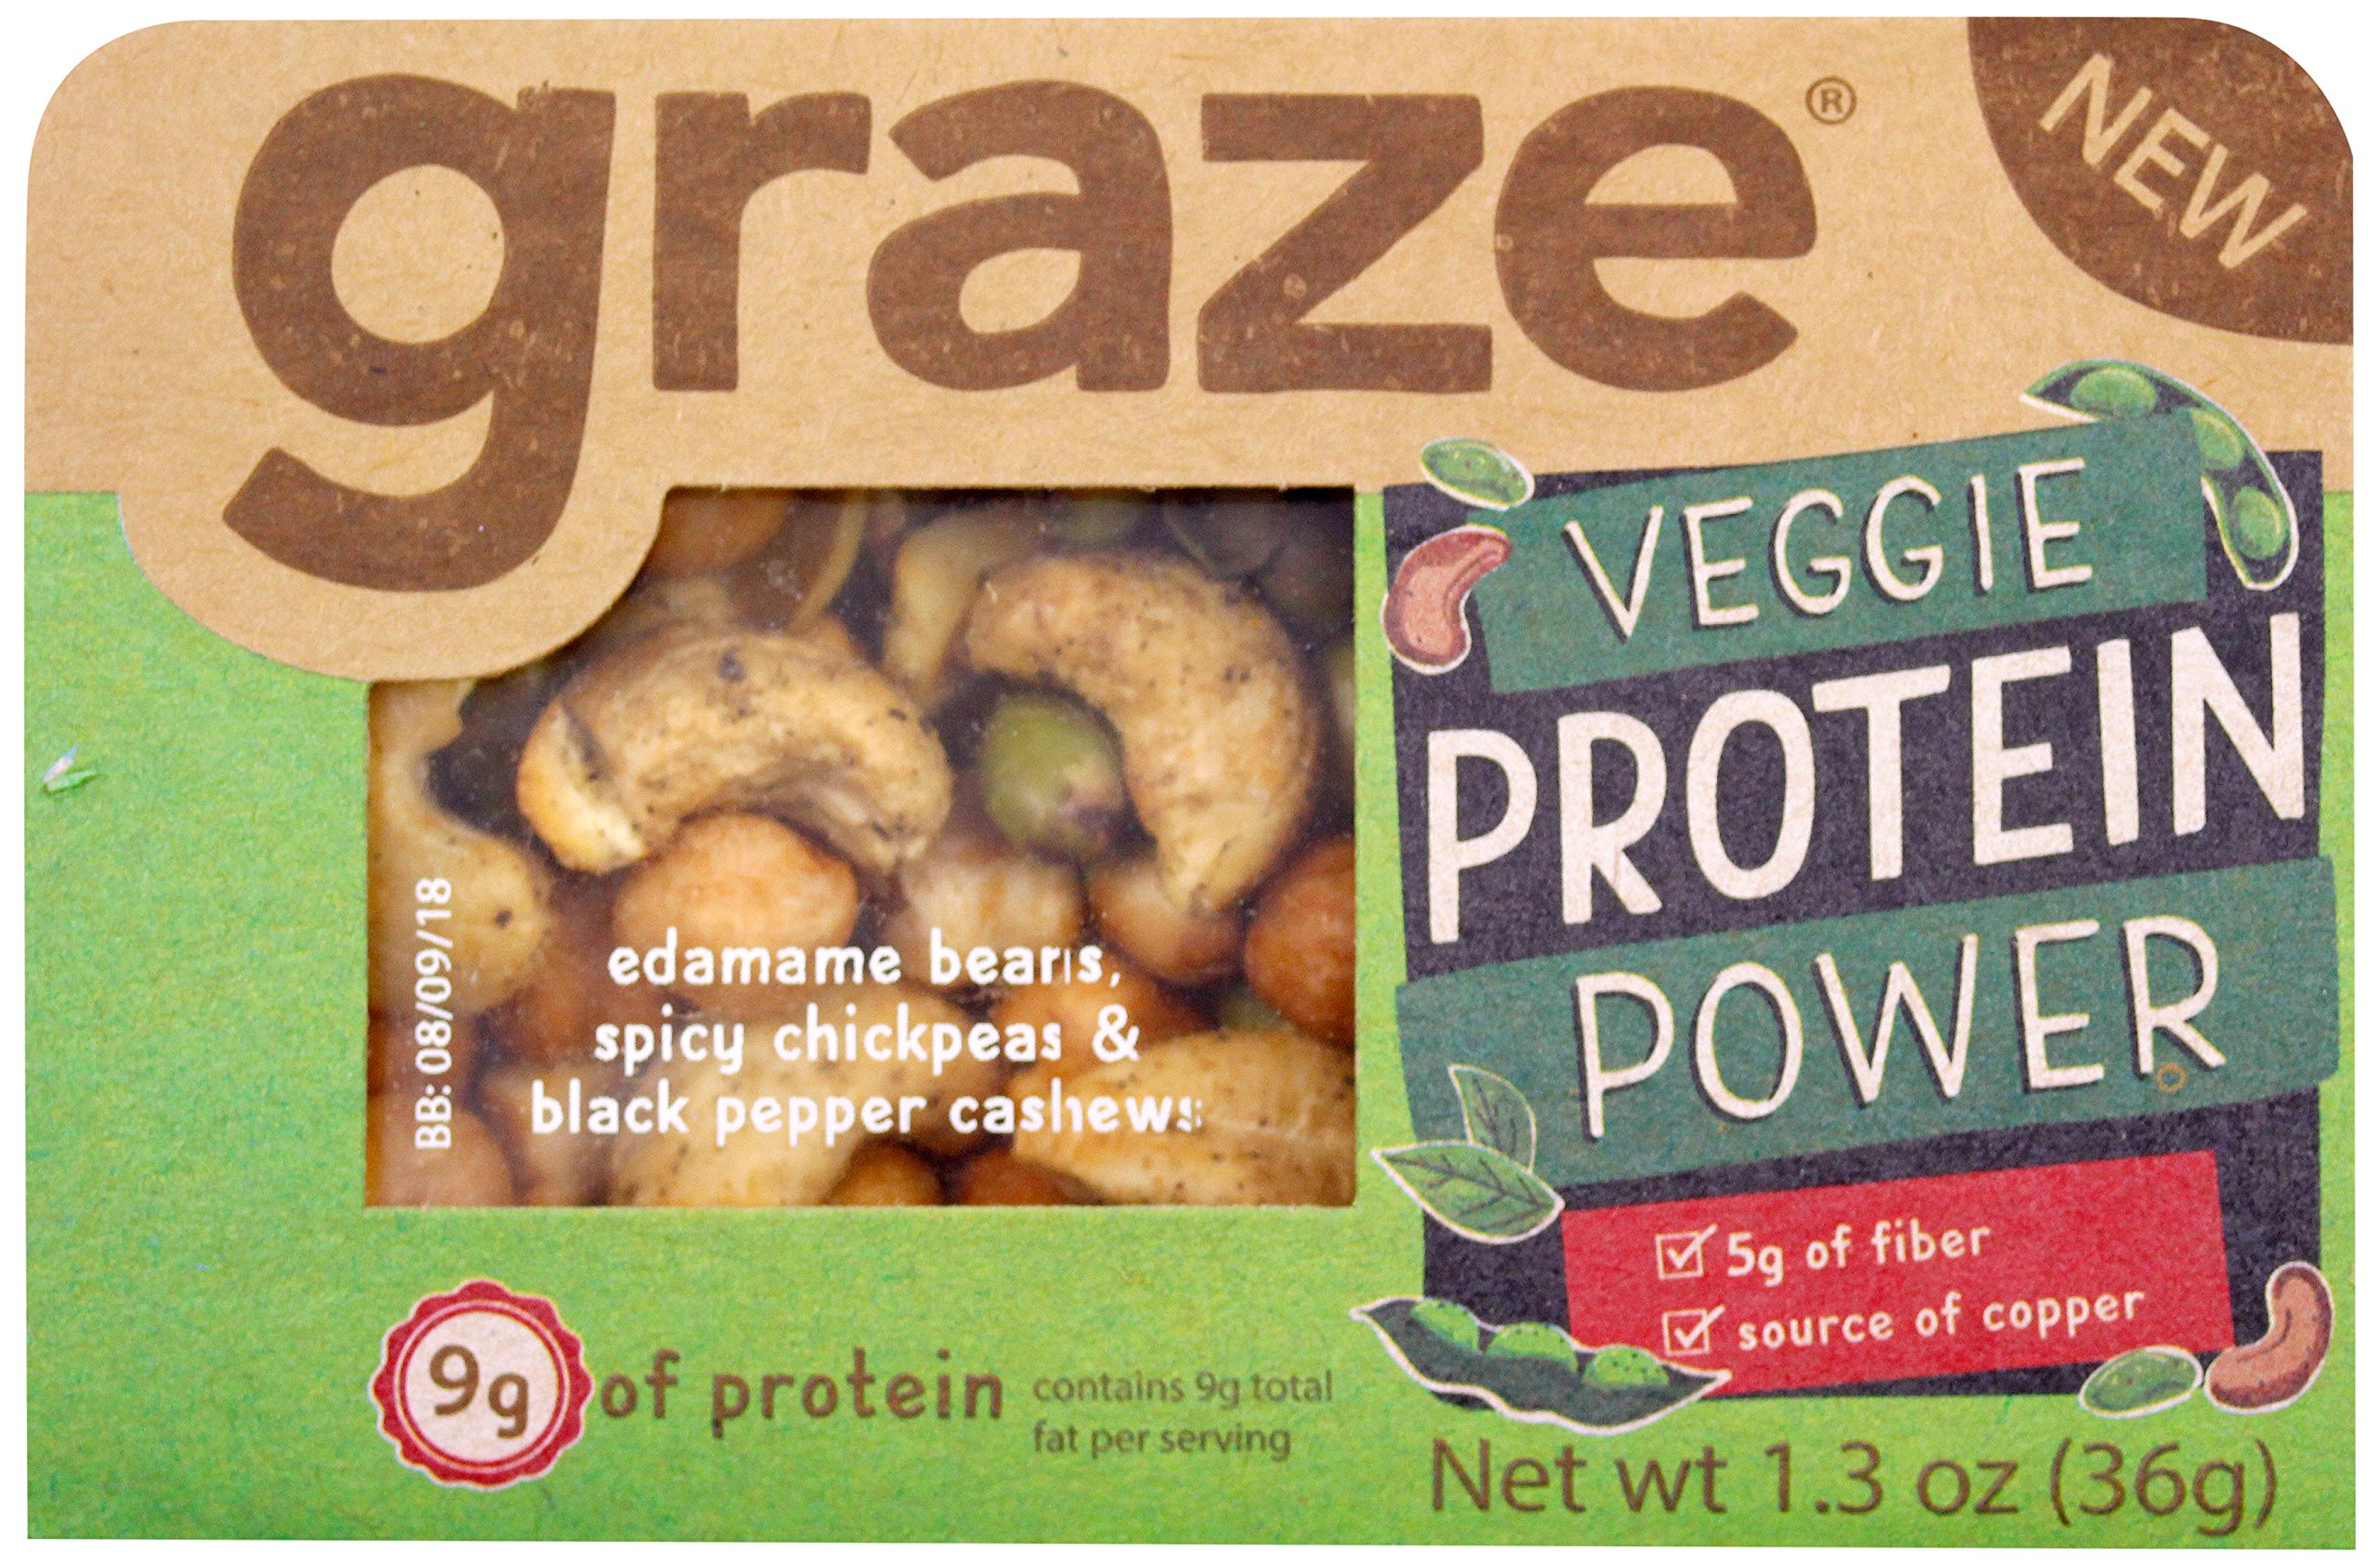 Graze Natural Veggie Protein Power Snack Mix with Spicy Chickpeas, Edamame Beans and Black Pepper Cashews, Tasty, Healthy, Natural Nut Trail Mix, 1.3 Ounce Box, 9 Pack by Graze (Image #1)